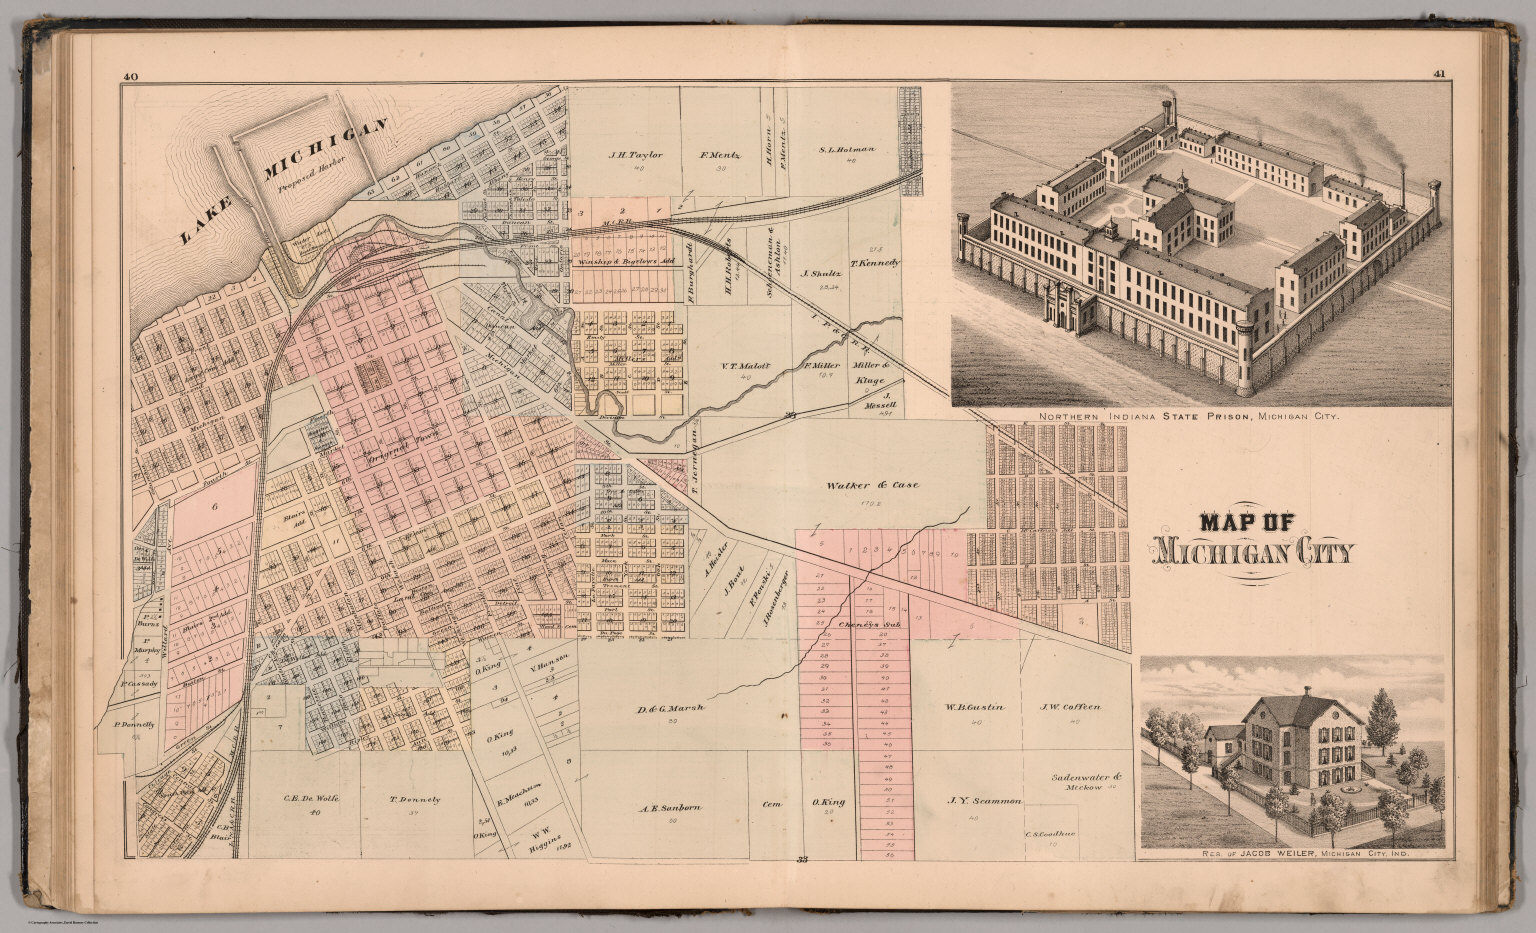 Michigan And Indiana Map.Map Of Michigan City View State Prison Residence Of Jacob Weiler